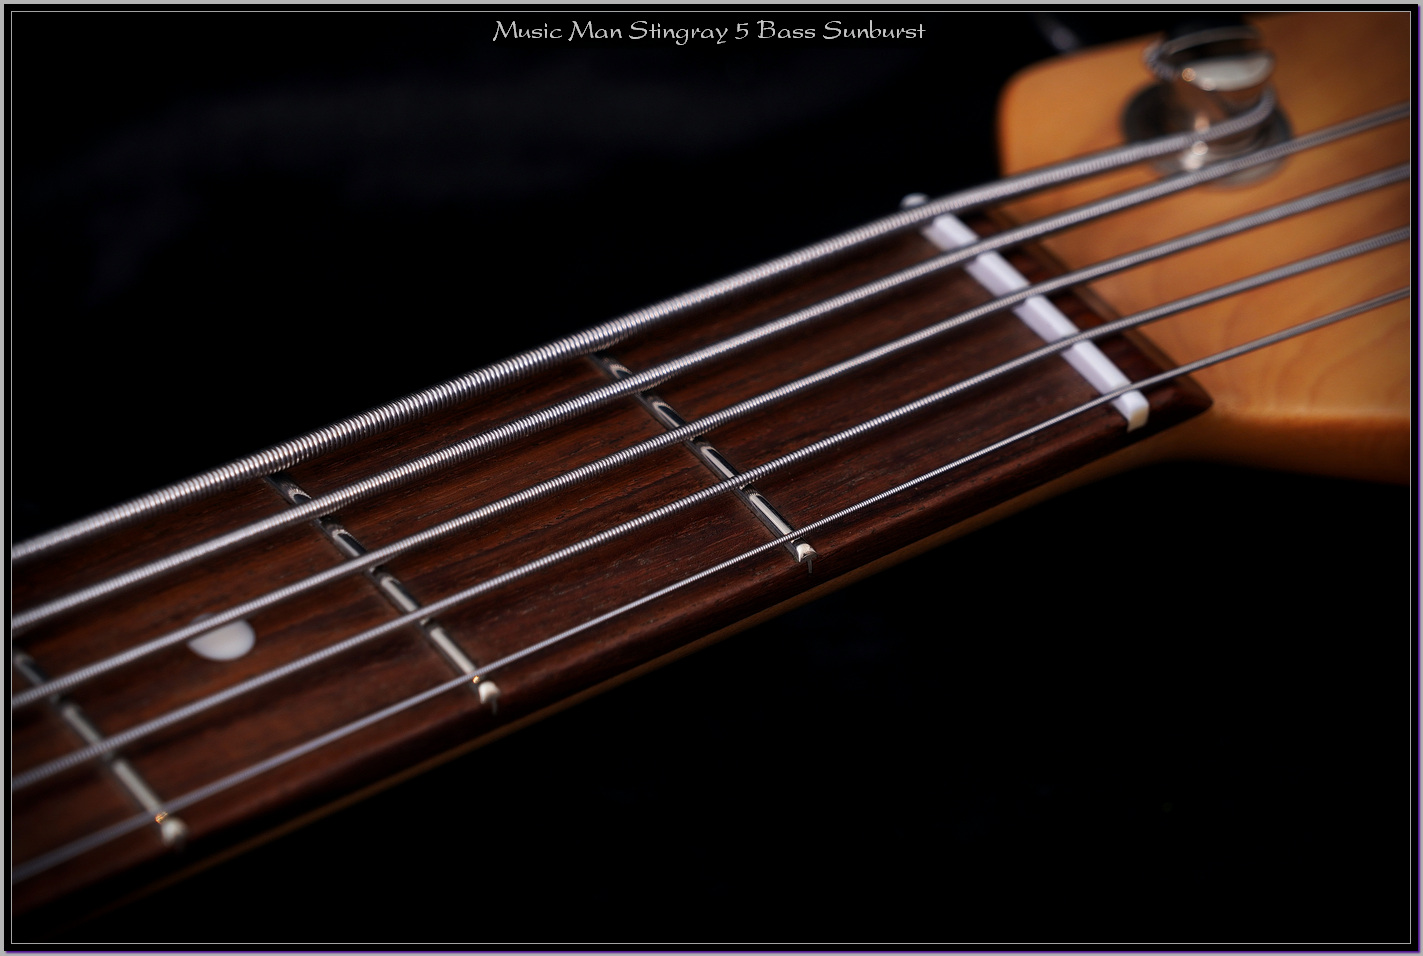 Music Man Stingray 5 Bass Sunburst 03a_xupd.jpg